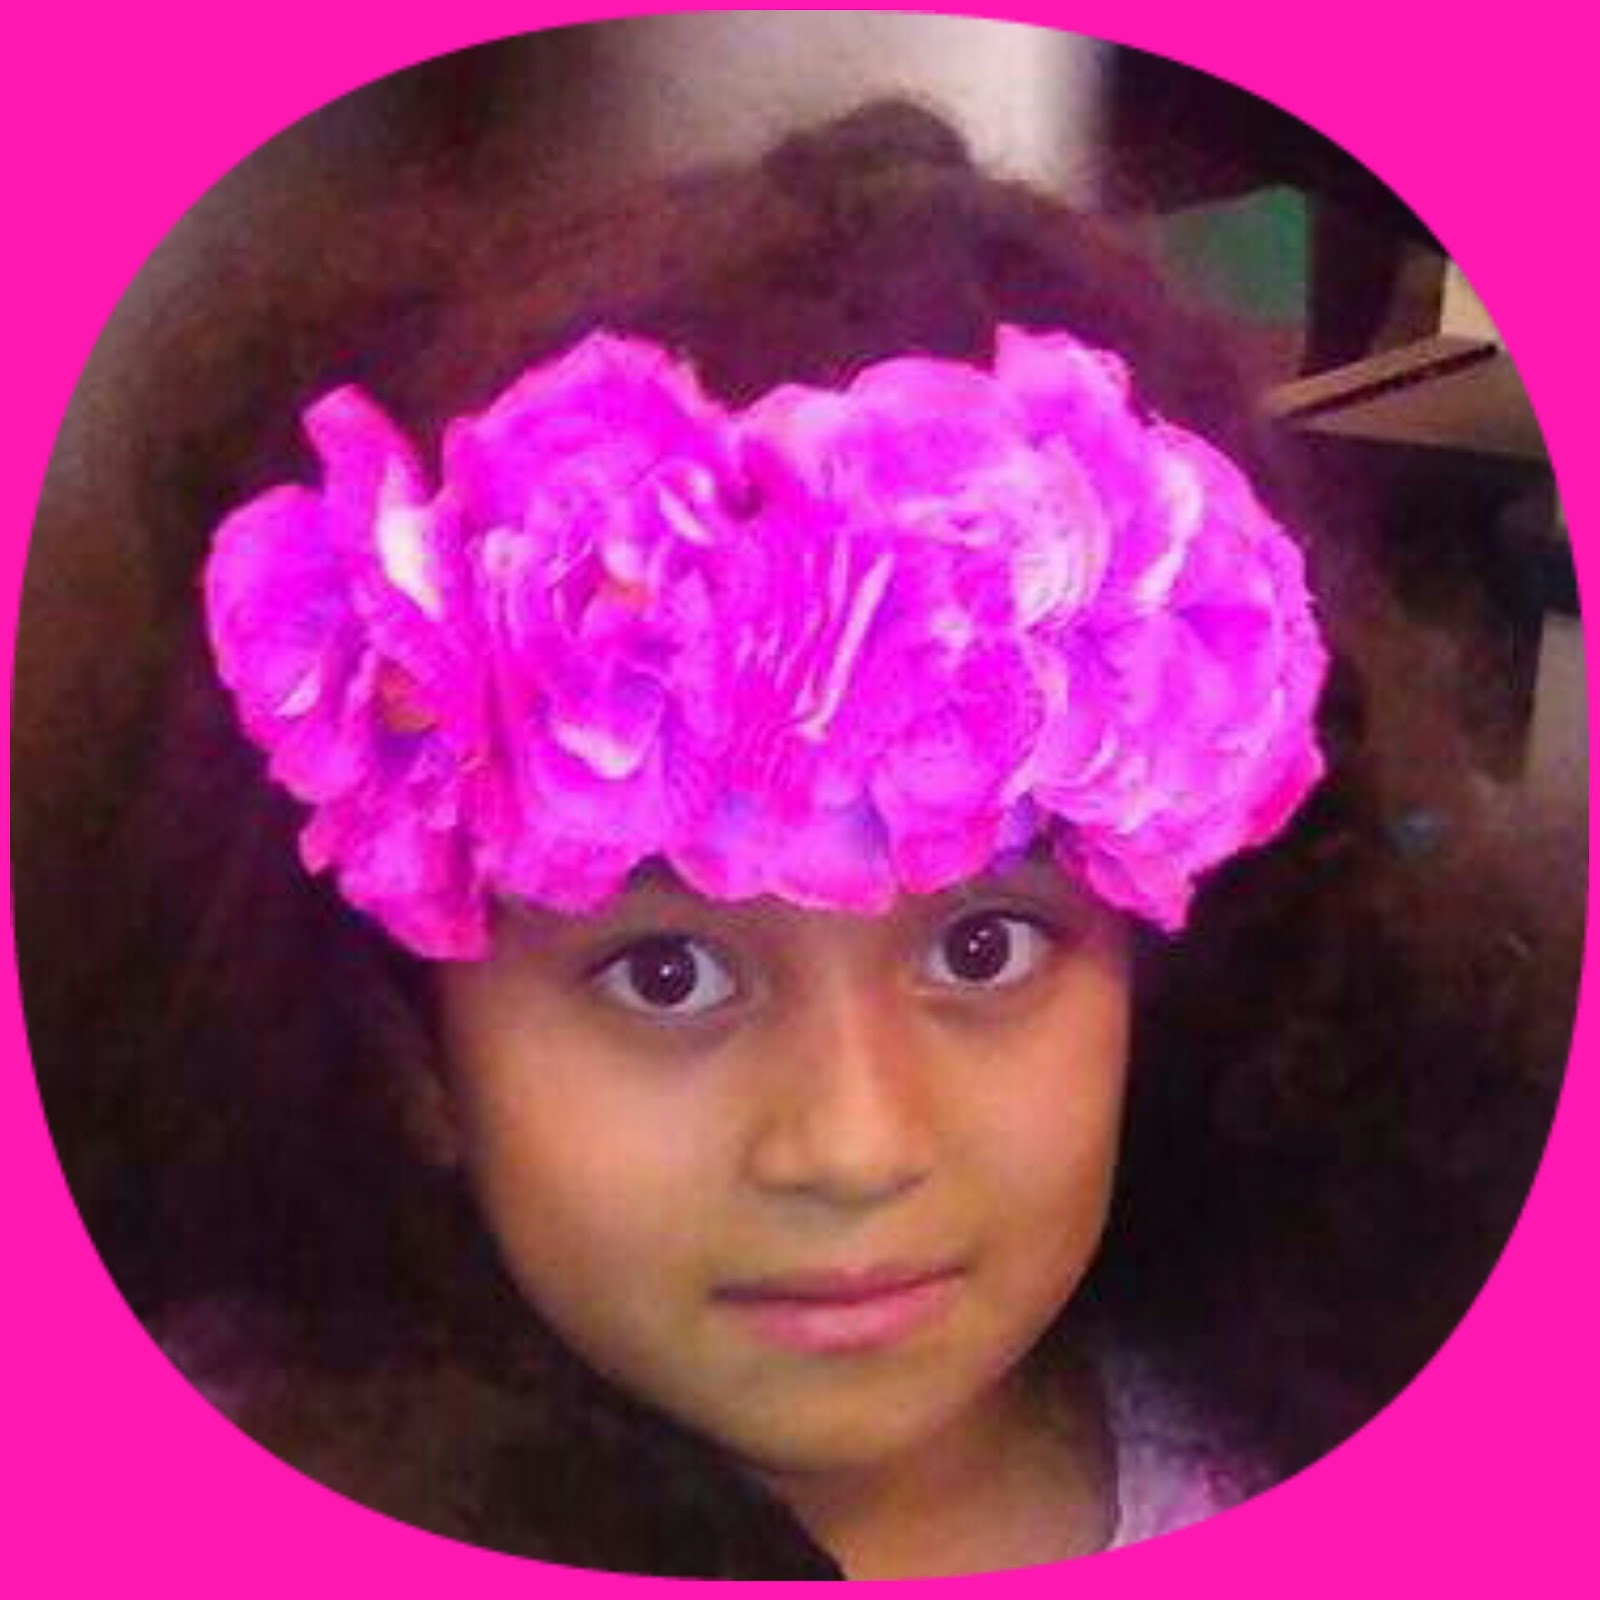 hawaiian princess  La Princesa Bohemian Babushkka's Granddaughter